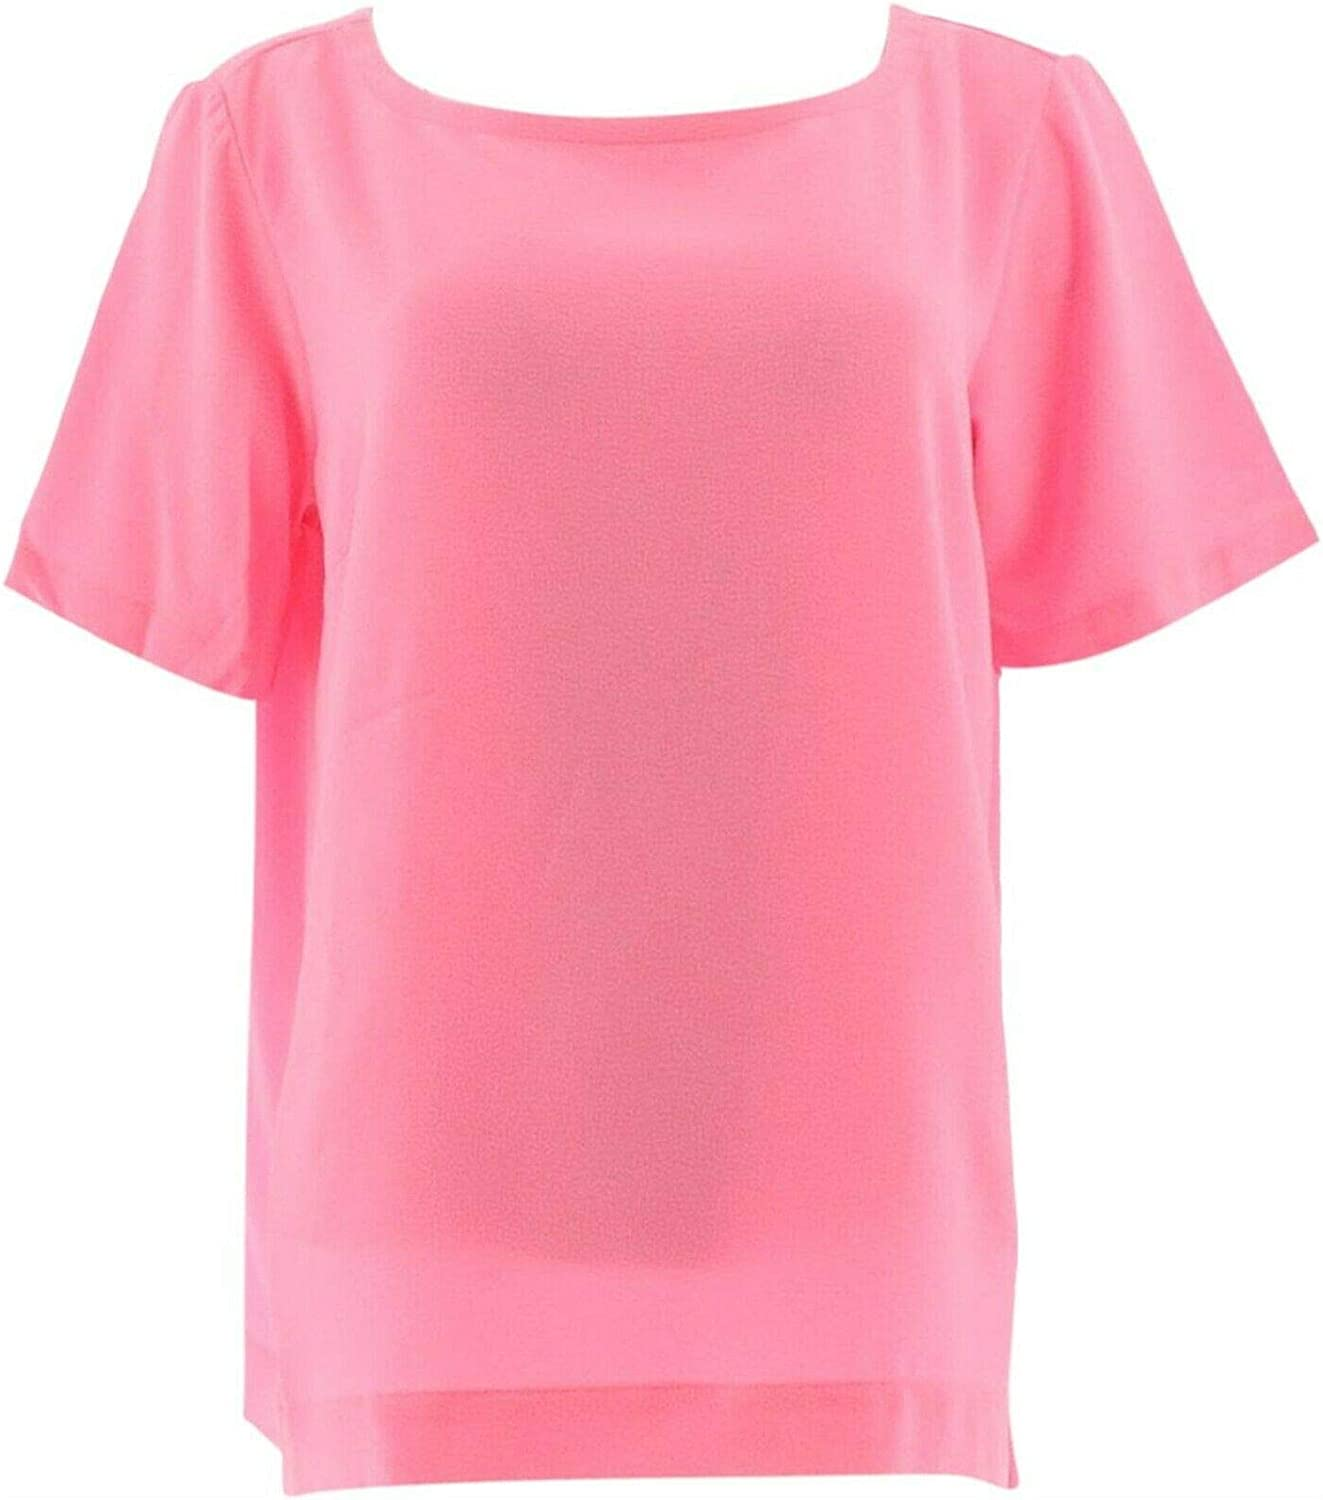 Linea Louis Dell'Olio Gauze Short SLV Tee Bright Pink M New A290928